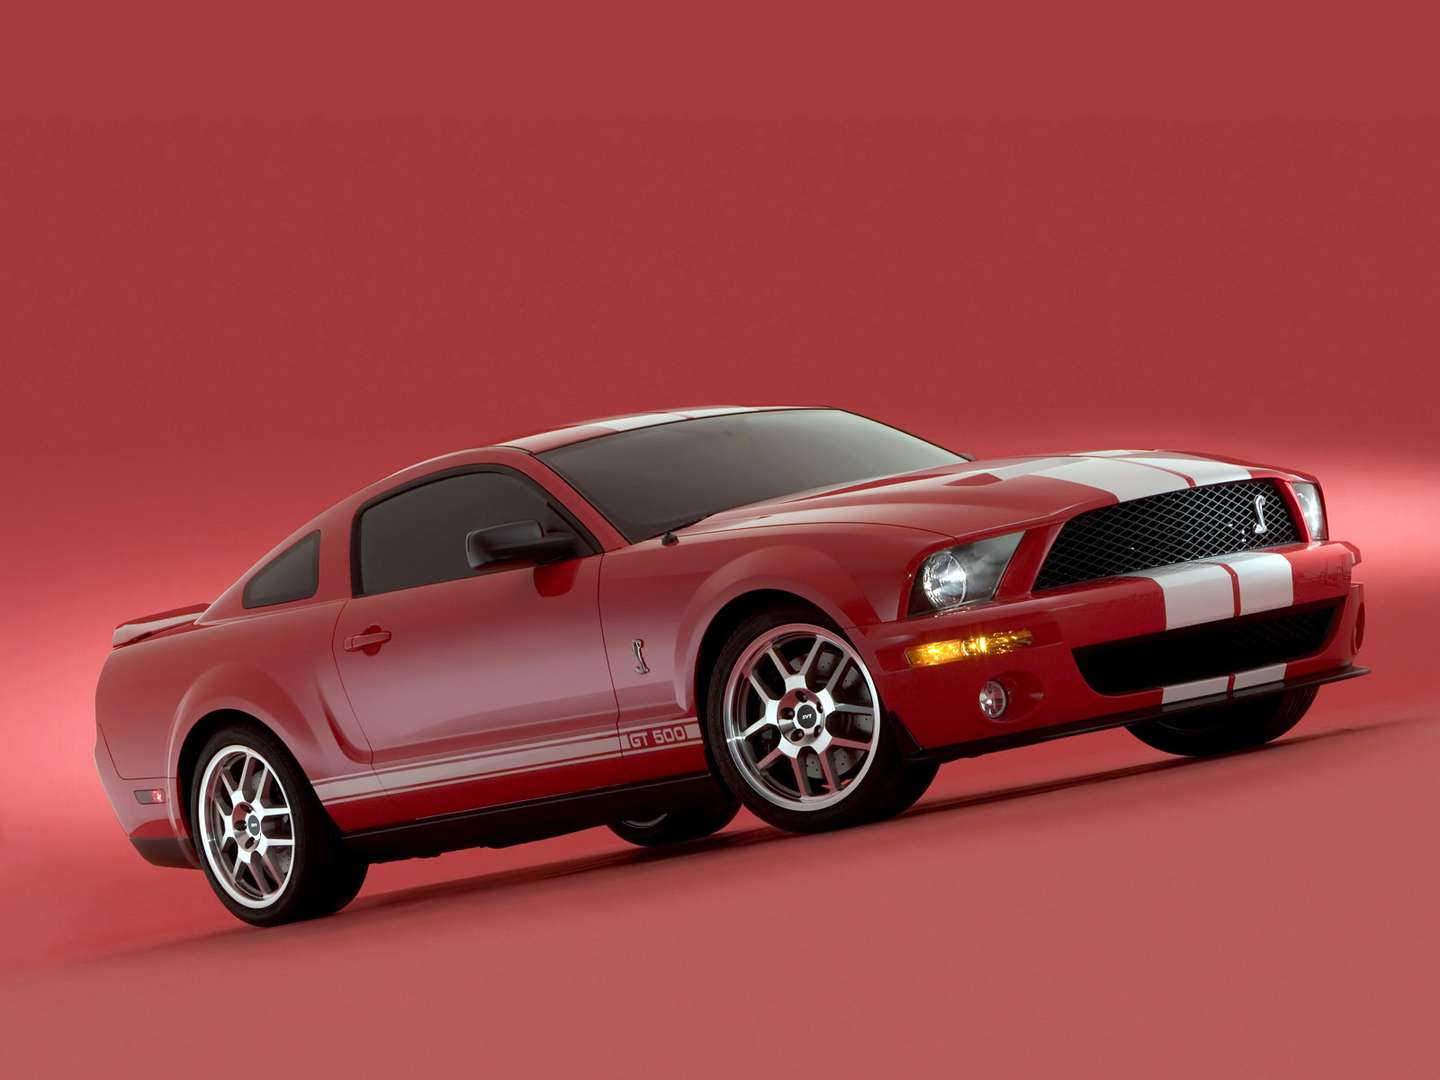 Ford Mustang Cobra #7417720